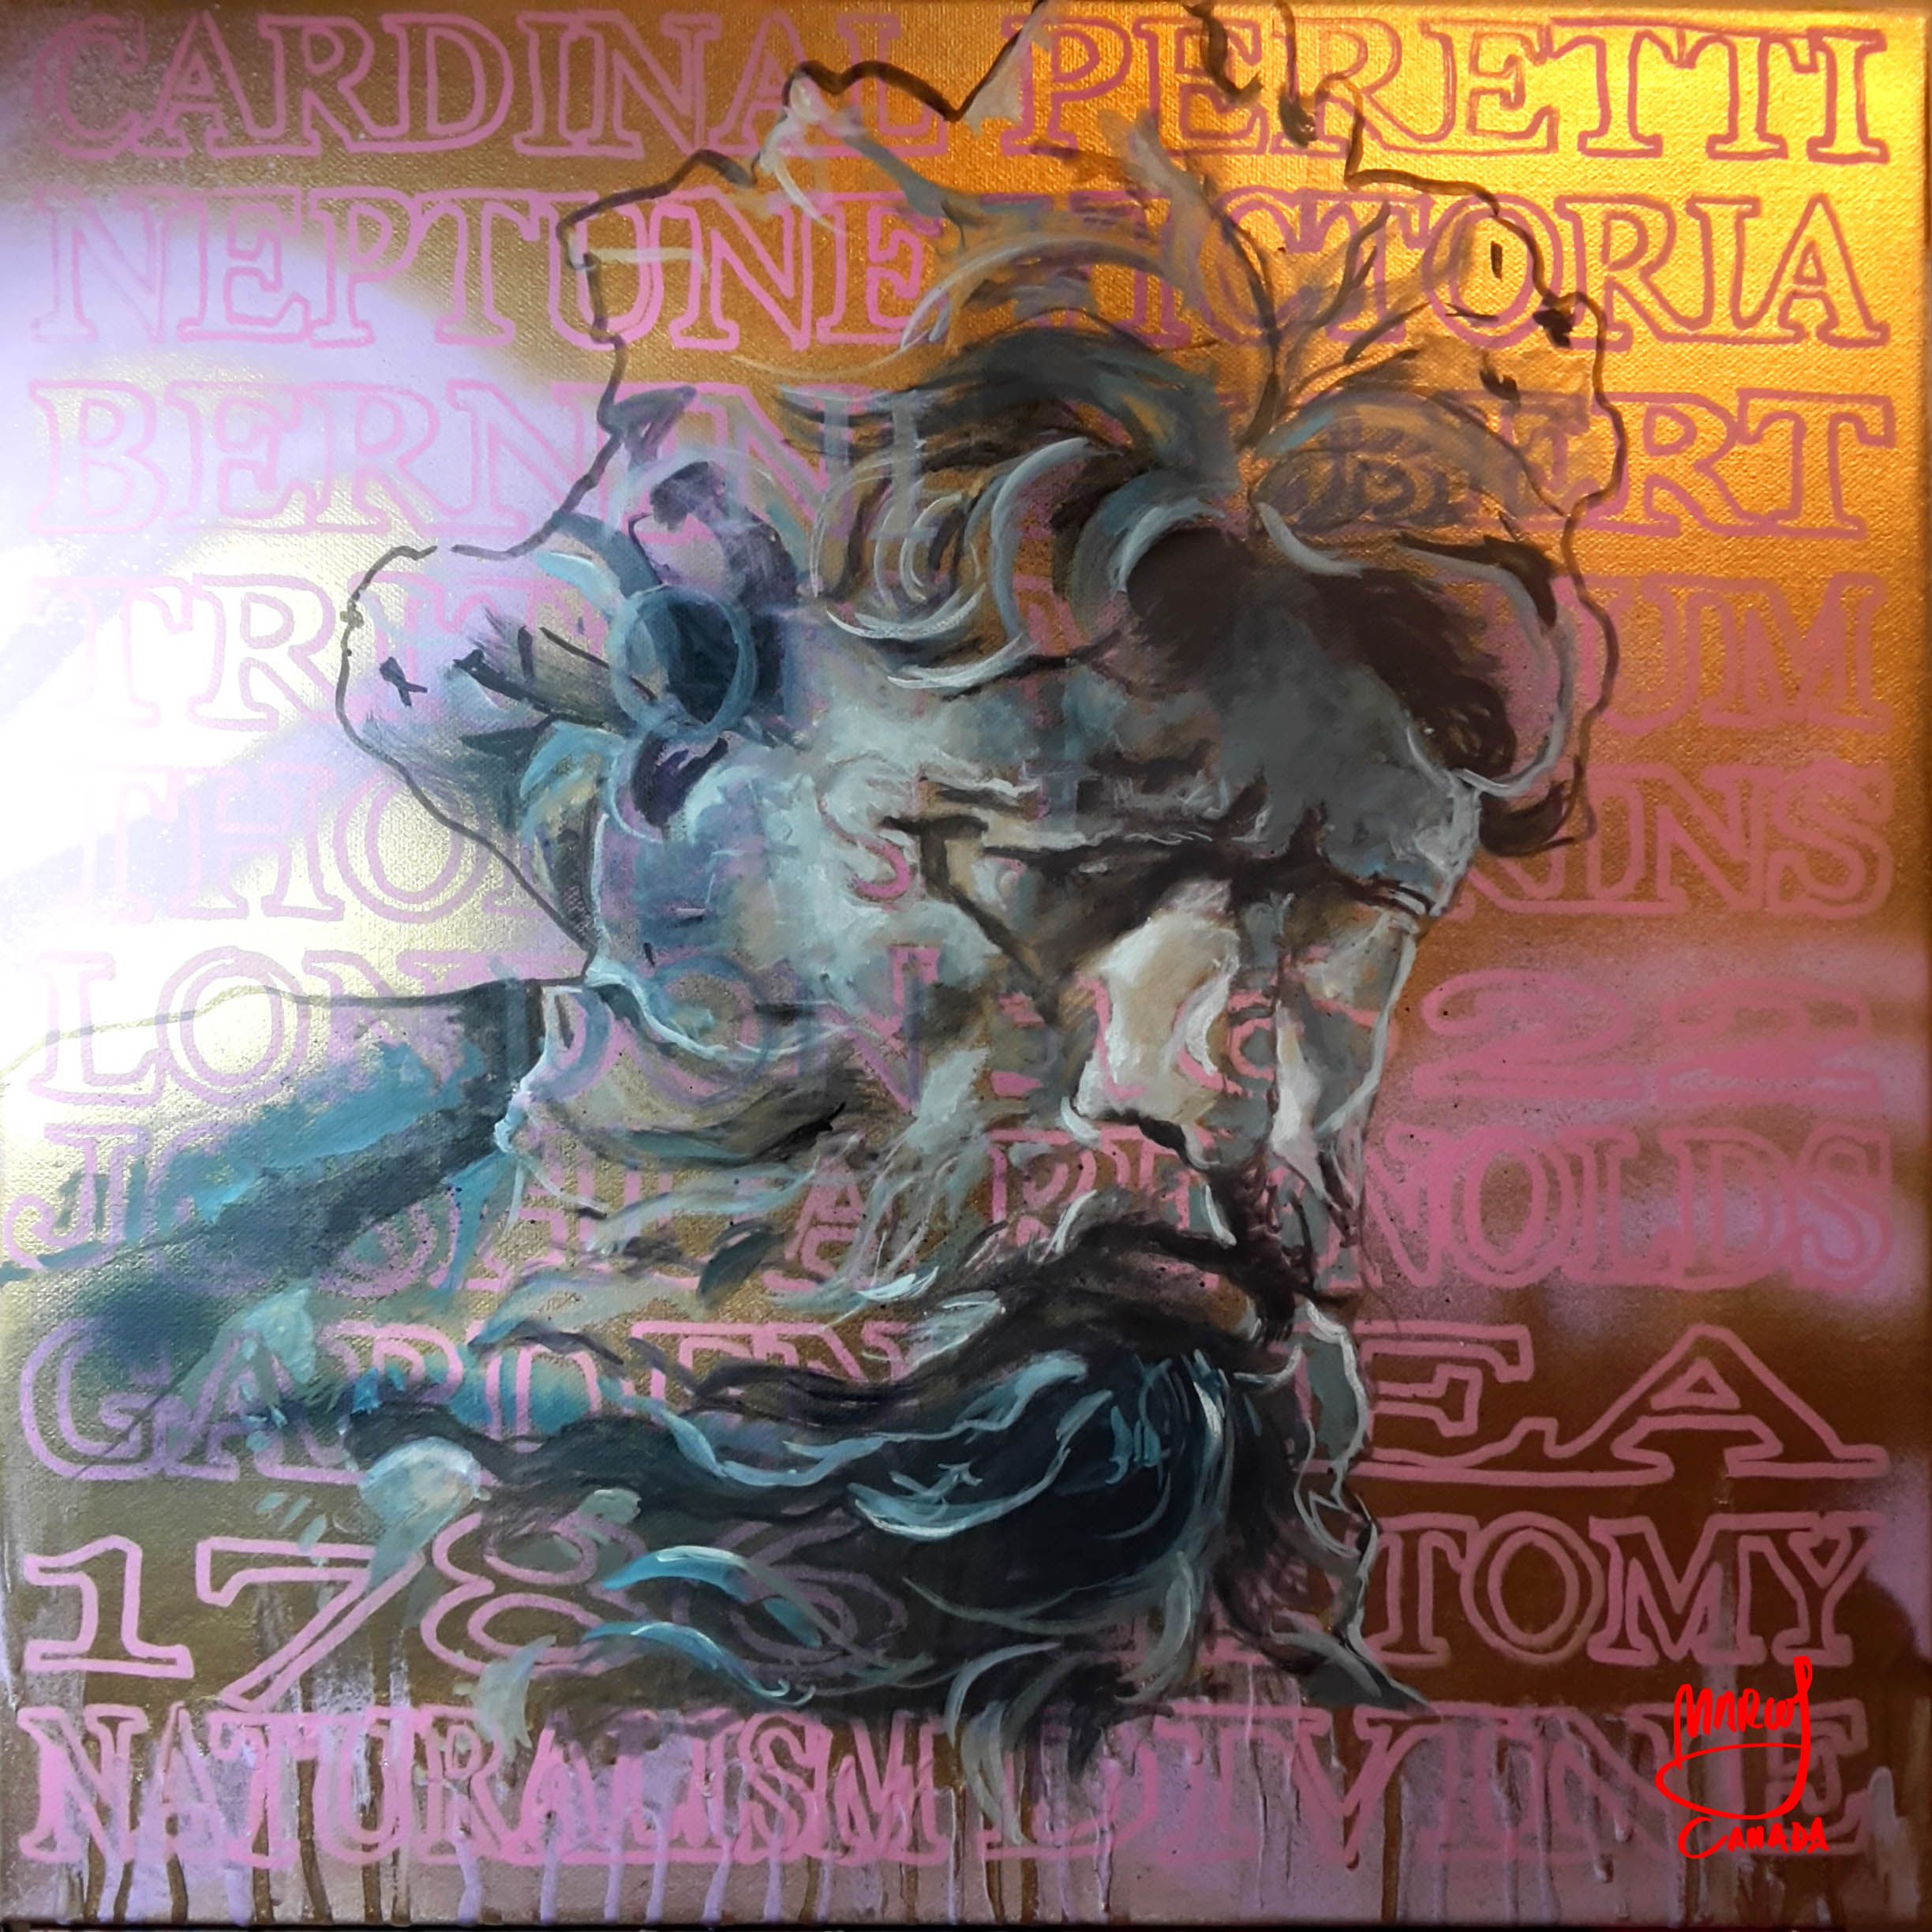 Neptune 01 by Marcos Cañada. Oil, spray and makers on canvas, 50 x 50 cm (19,6 x 19,6 inches)